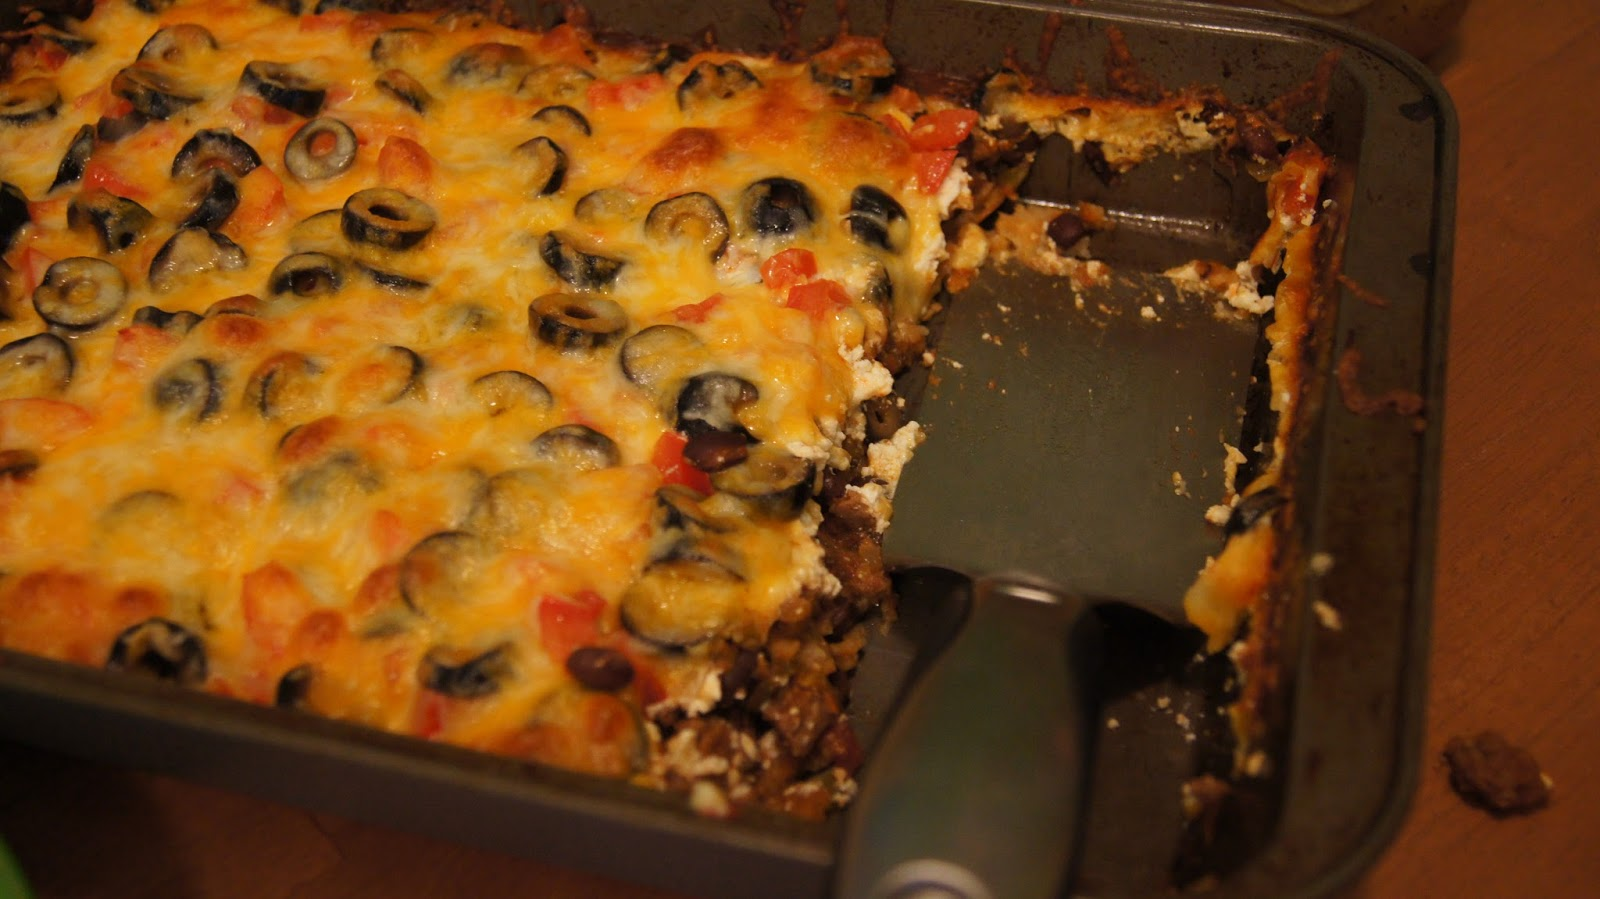 Elizabeth's Dutch Oven: Easy Mexican Casserole